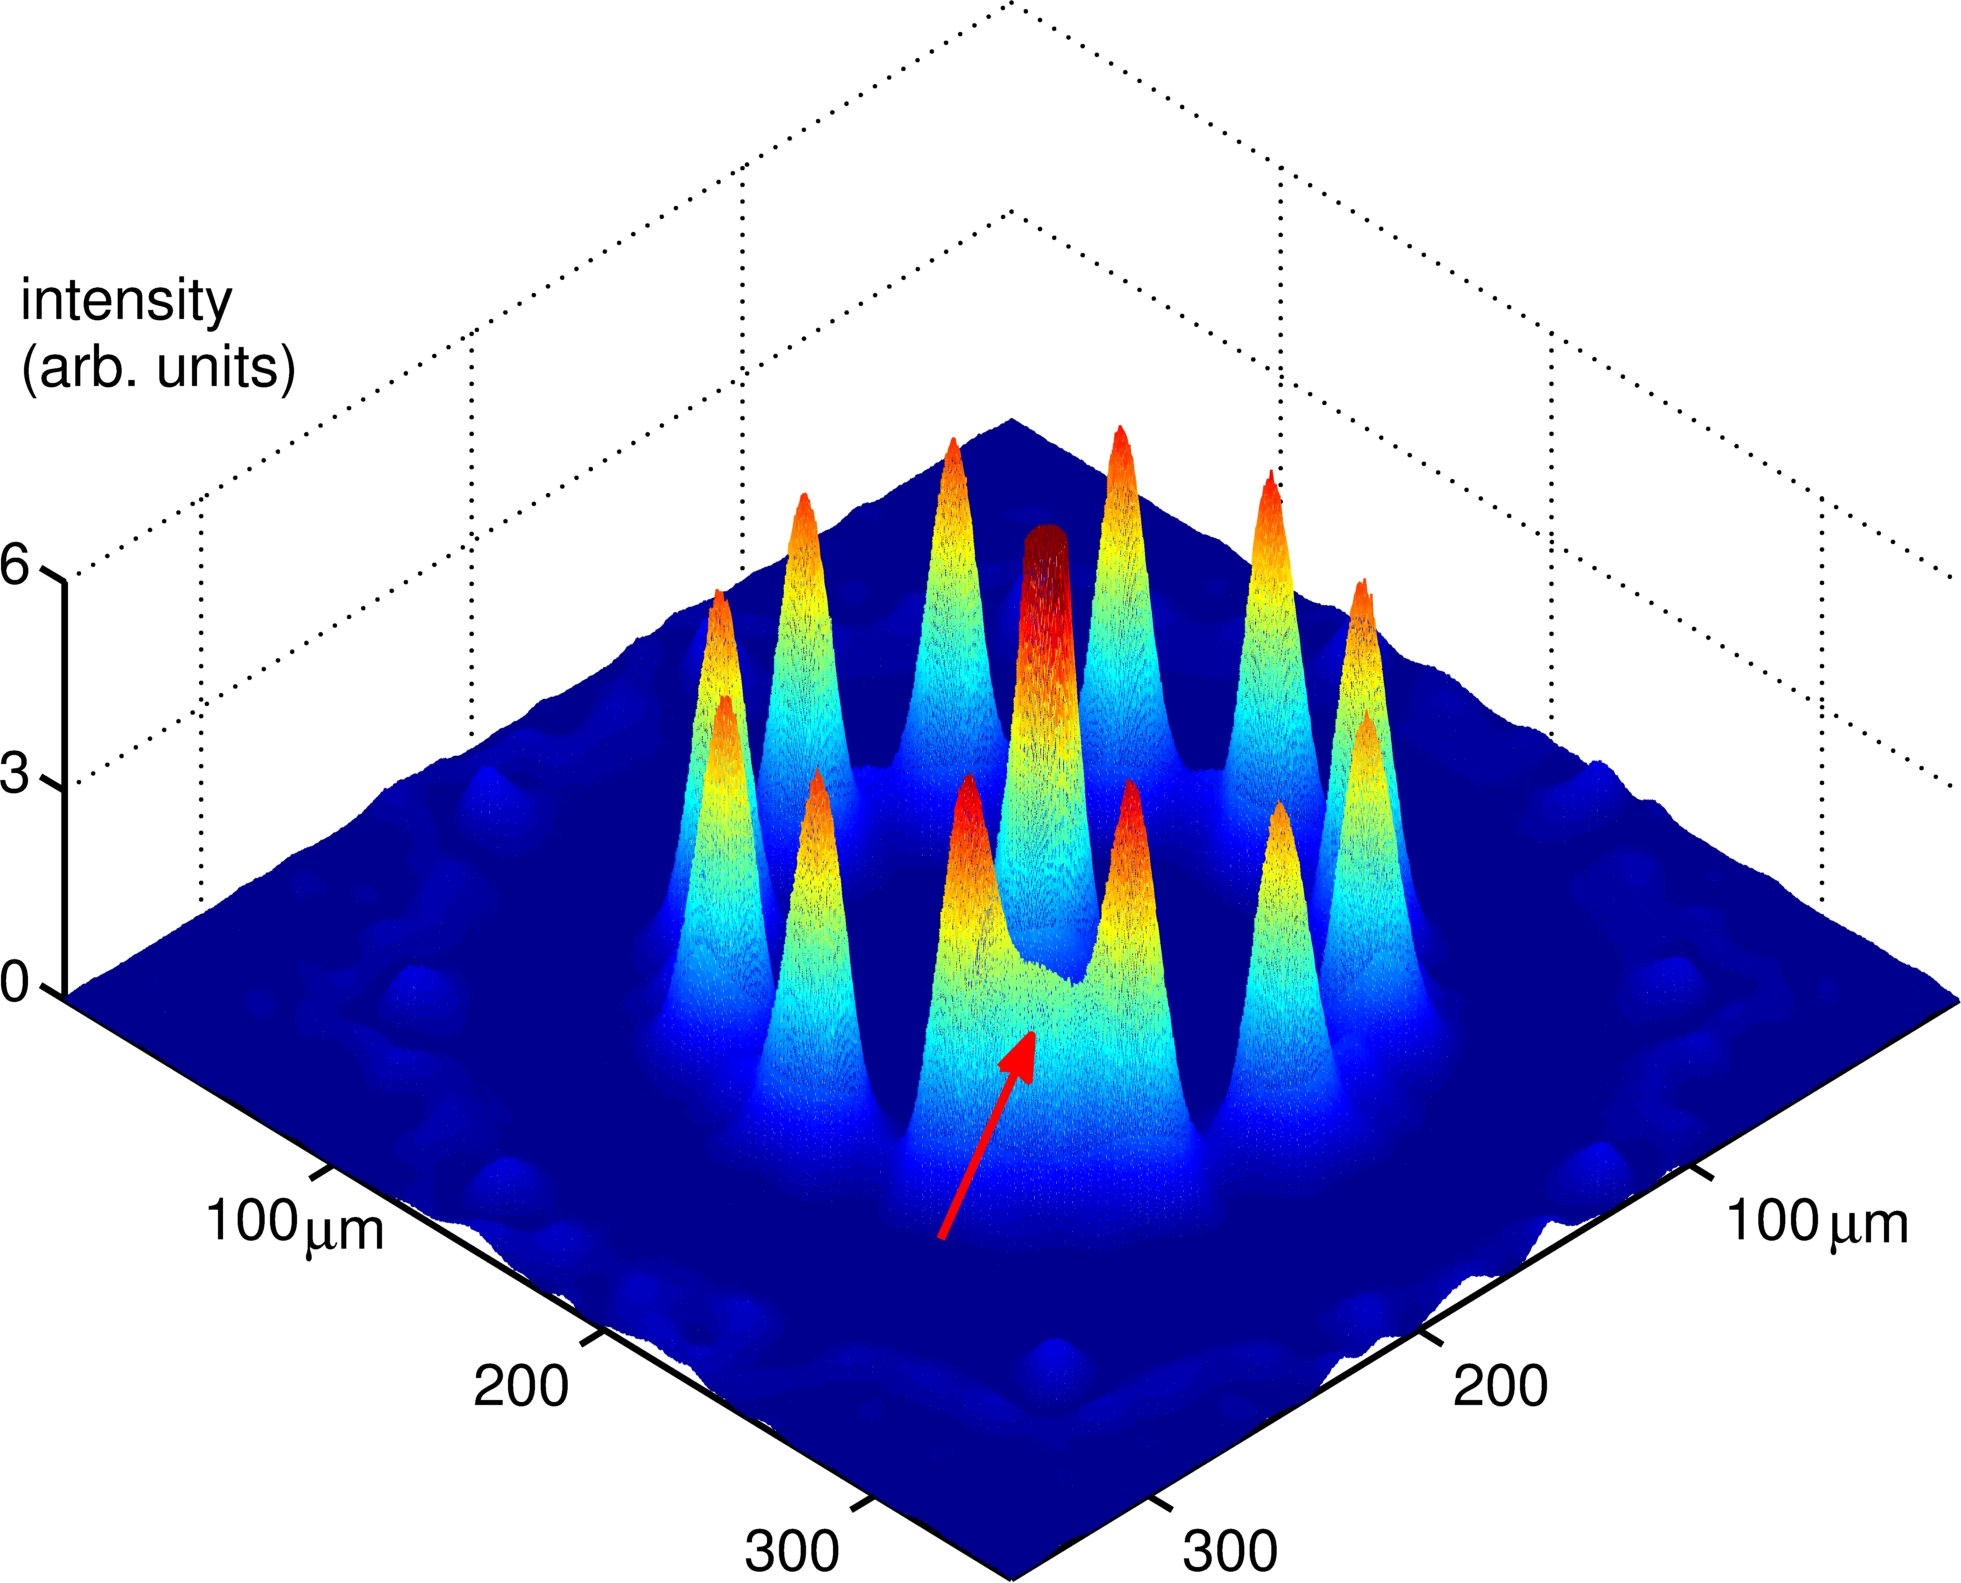 Measured intensity distribution with an azimuthal lattice spacing of 28